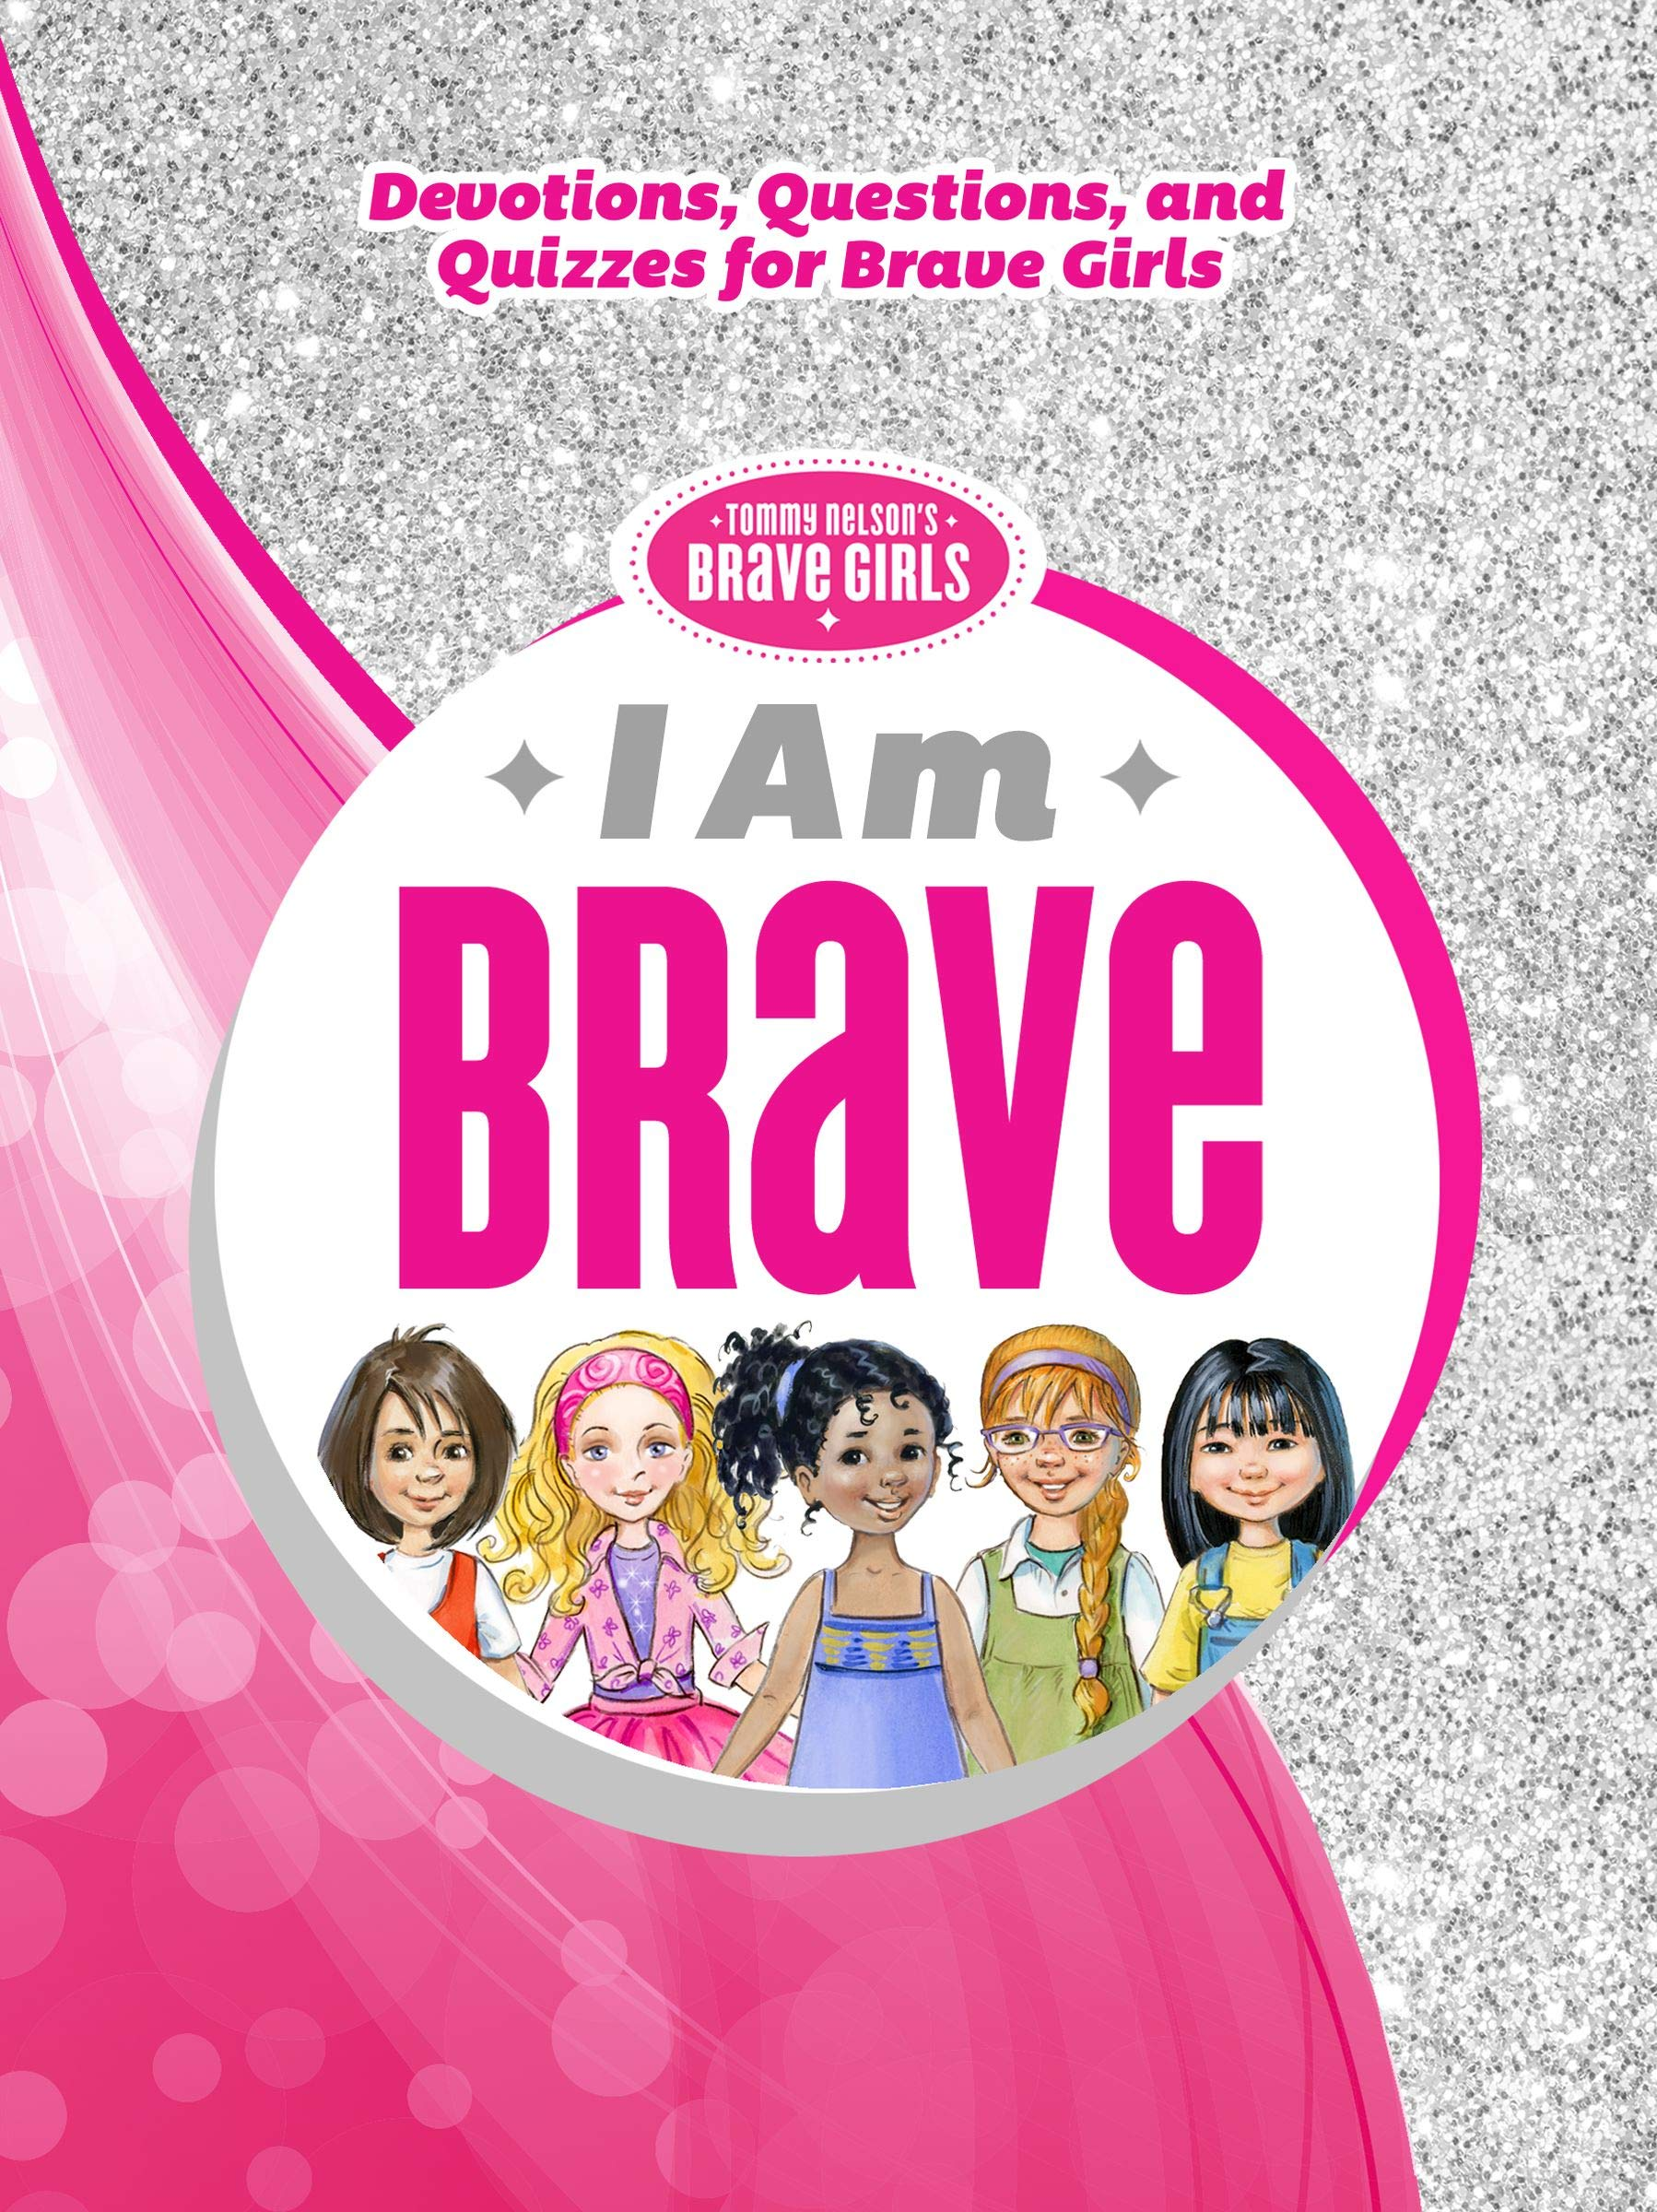 ROCKONLINE | New Creation Church | NCC | Joseph Prince | ROCK Bookshop | ROCK Bookstore | Star Vista | Children | Kids | Devotional | Daily Devo | God's Word | Christian Living | Bible | Bible Stories | I Am Brave: Devotions, Questions, and Quizzes for Brave Girls | Free delivery for Singapore Orders above $50.